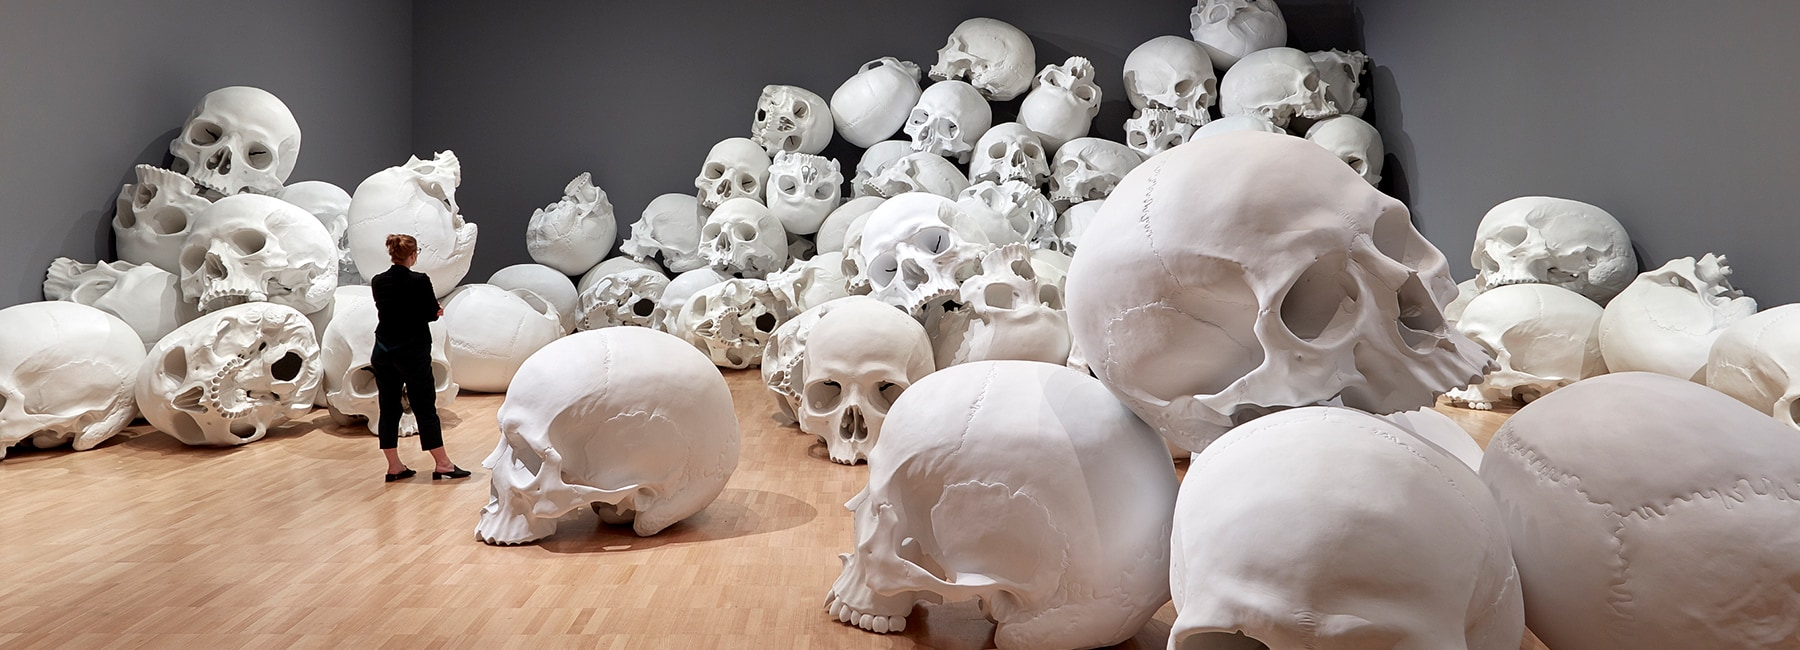 Ron Mueck Stacks Hundred Skulls At His Biggest Ever